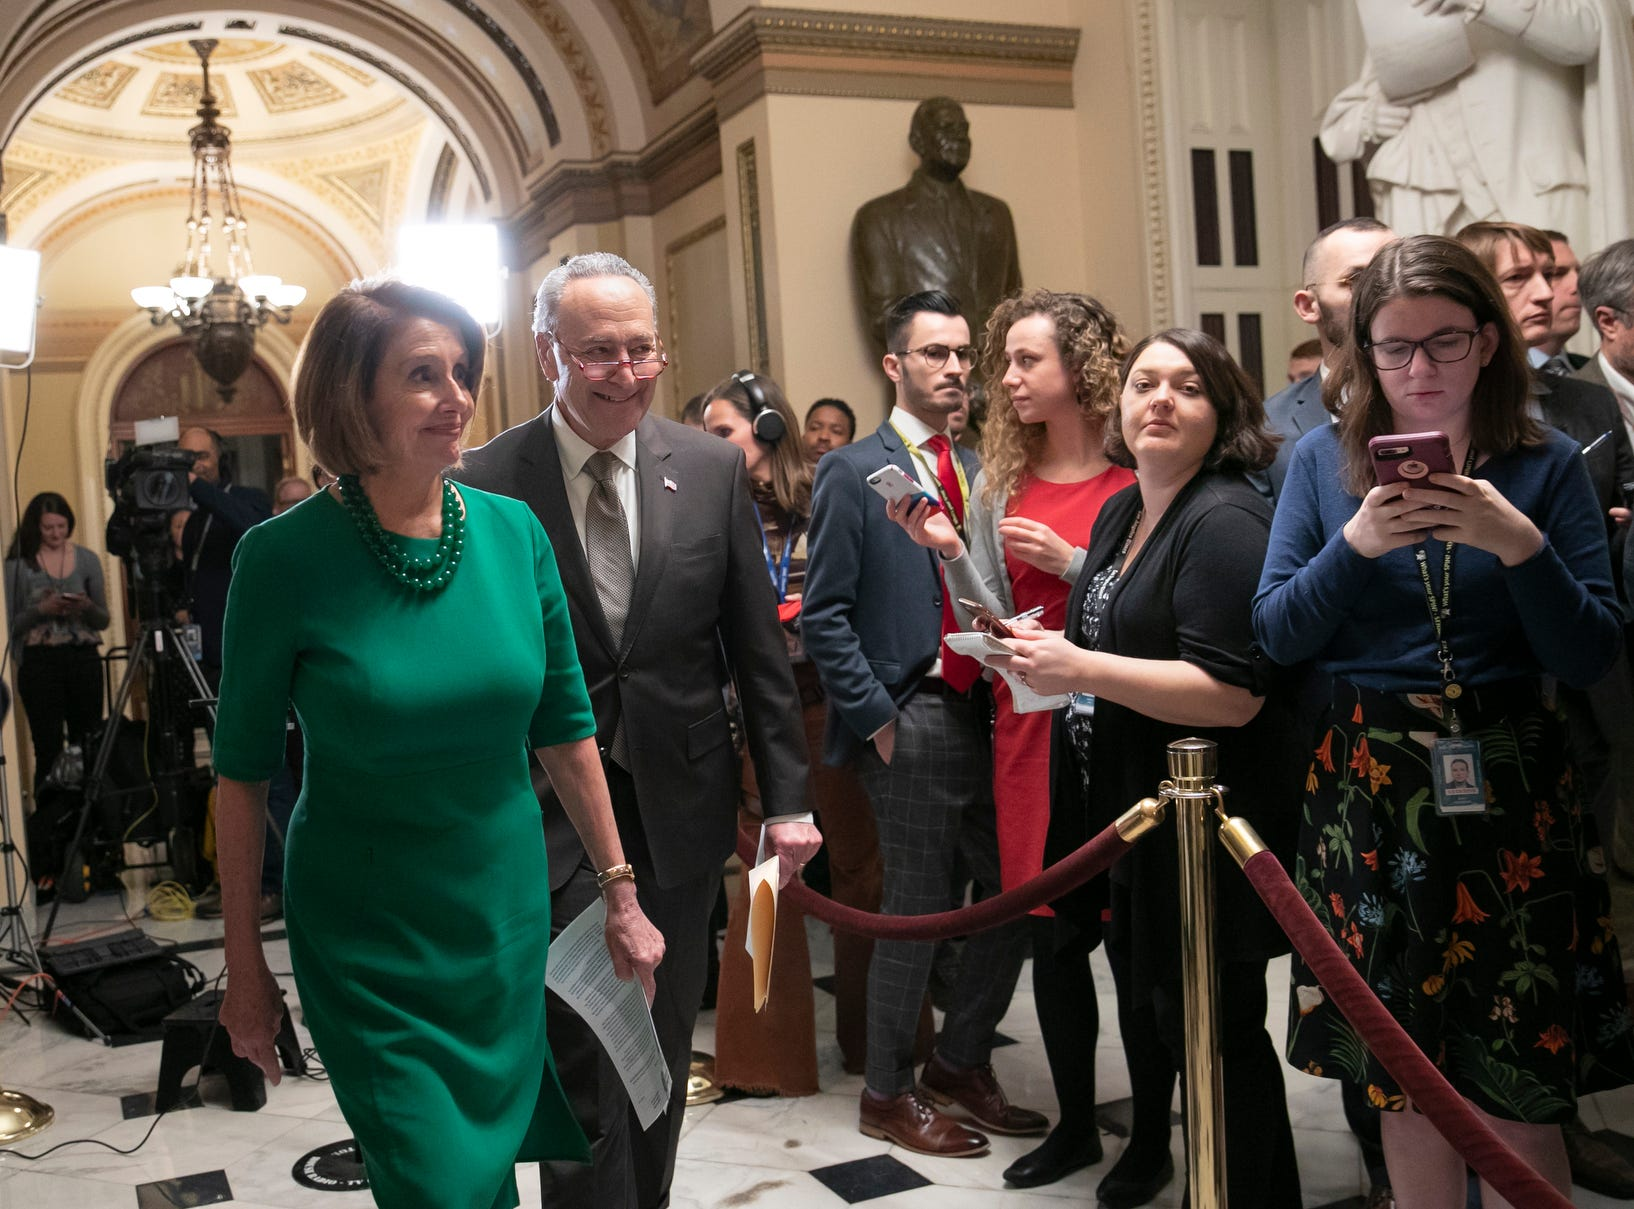 House Democratic Leader Nancy Pelosi of California, the speaker-designate for the new Congress, and Senate Minority Leader Chuck Schumer, D-N.Y., leave after talking to reporters as a revised spending bill is introduced in the House that includes $5 billion demanded by President Donald Trump for a wall along the U.S.-Mexico border, as Congress tries to avert a partial shutdown, in Washington, on Dec. 20, 2018.